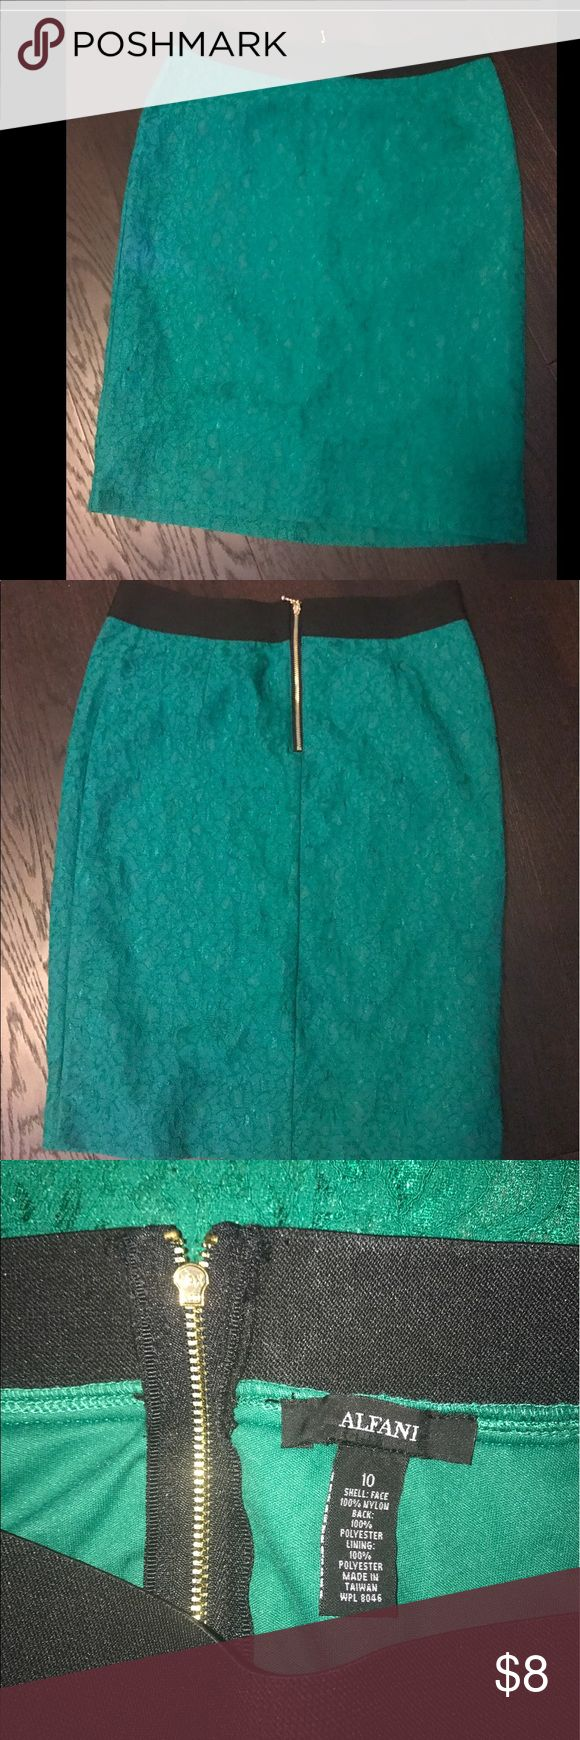 Cute green pencil skirt Pencil skirt, with lace detail... very cute and in great condition!! Alfani Skirts Pencil